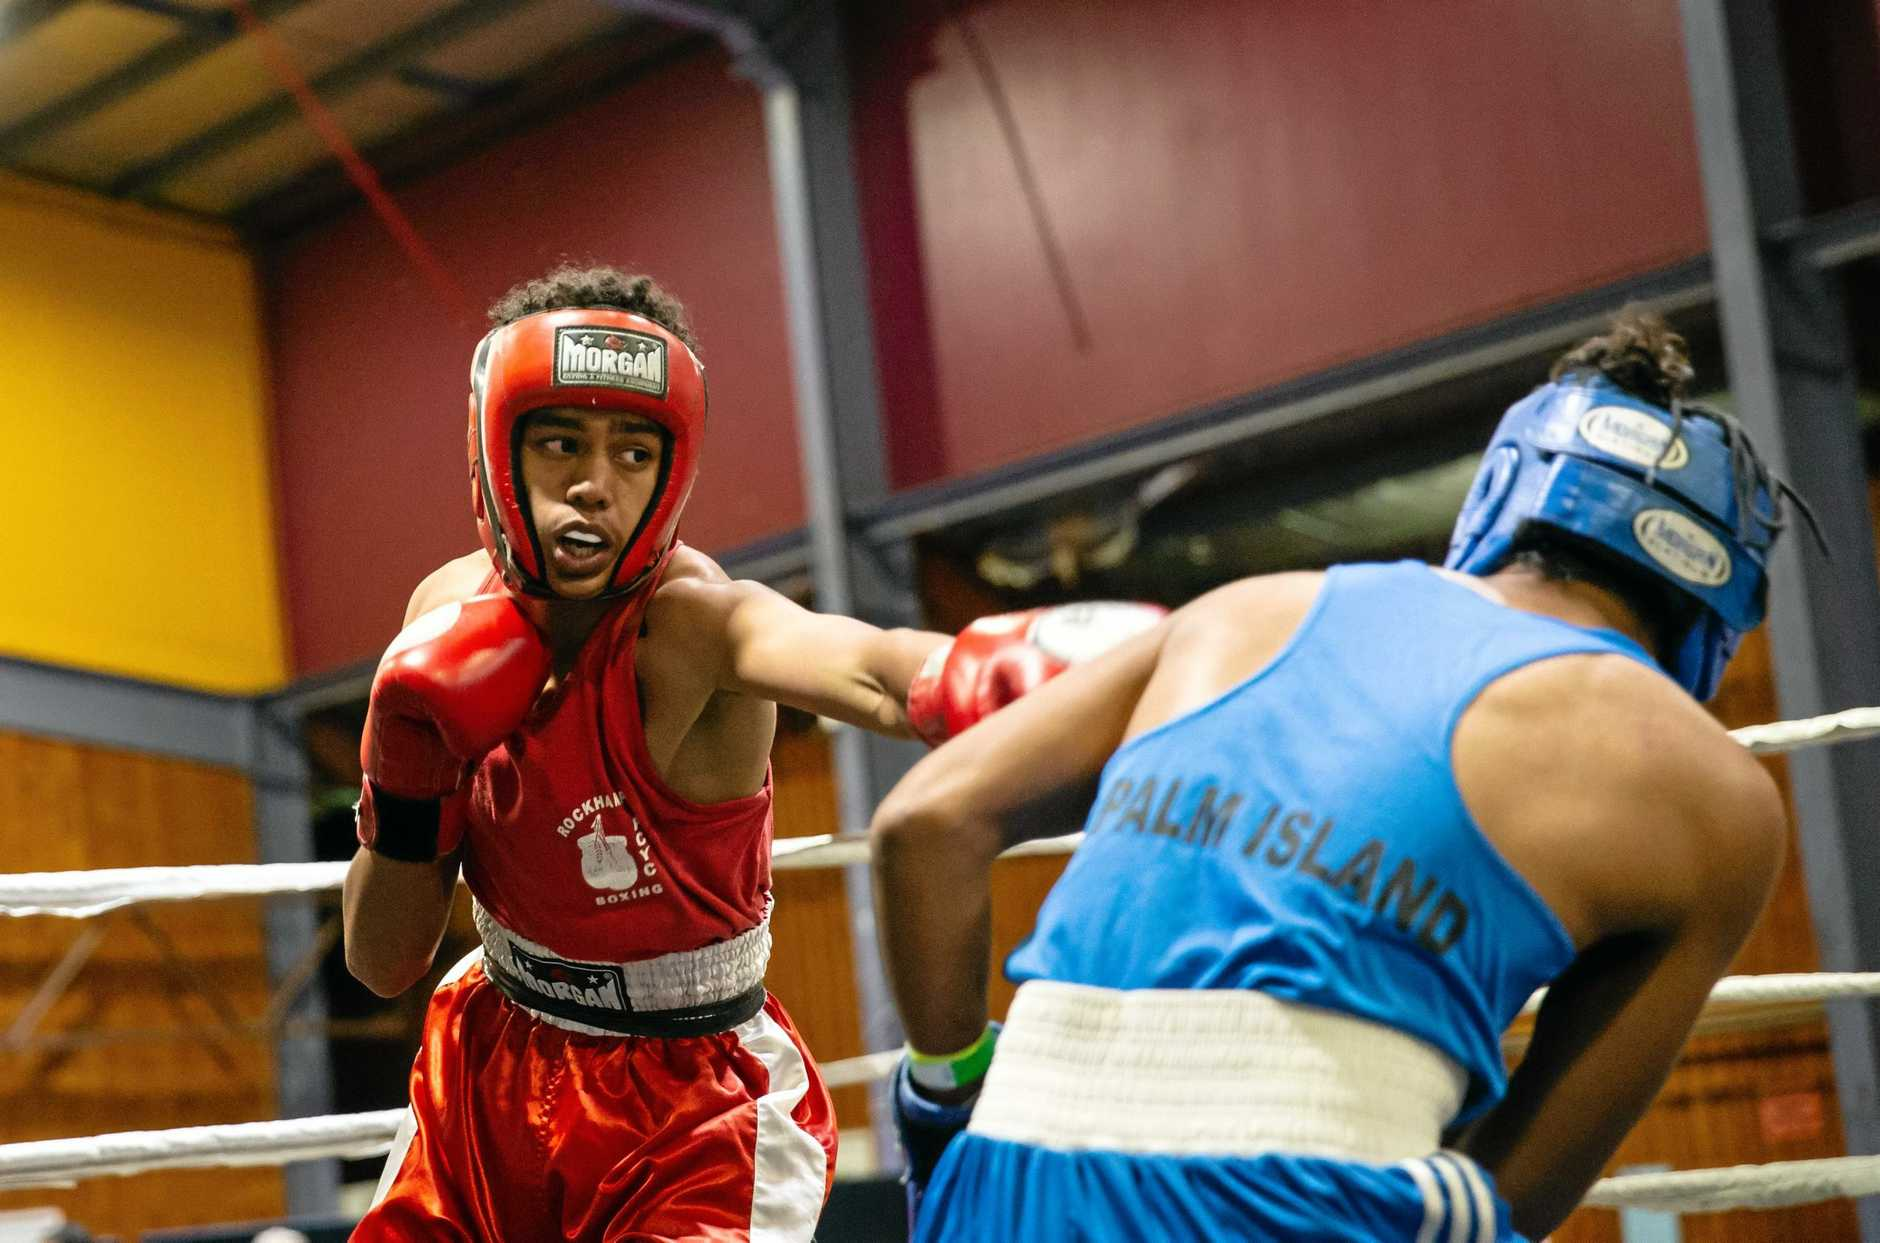 Boxing: PCYC's Drayden Marou (red) and Palm Island's Raymond Haines (blue).